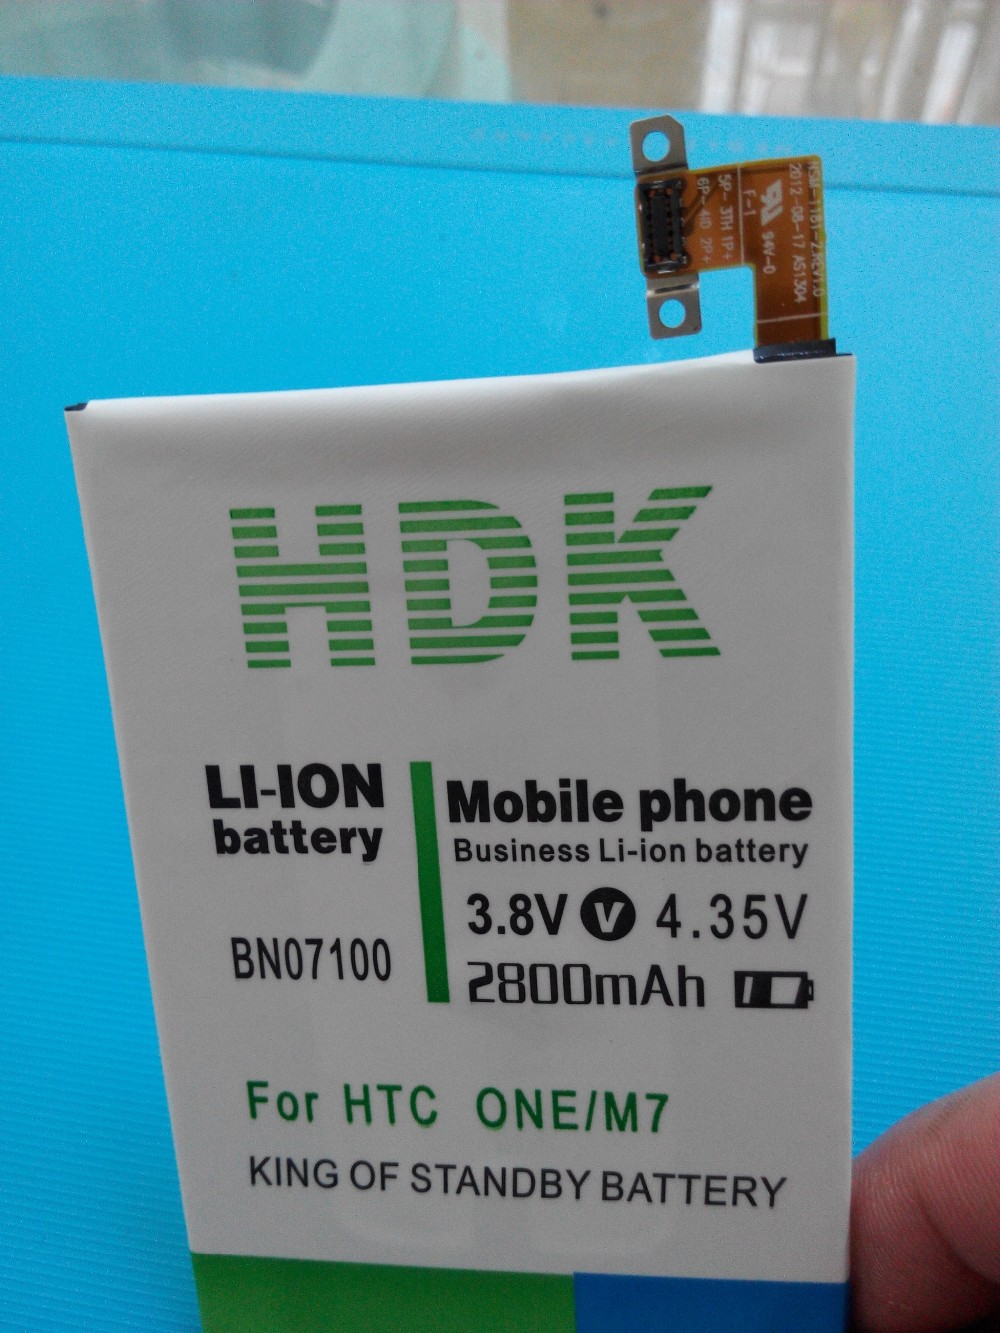 New Replacement Battery 2800mAh BN07100 Phone Battery Use for HTC ONE M7 802D 802T 802W 801E